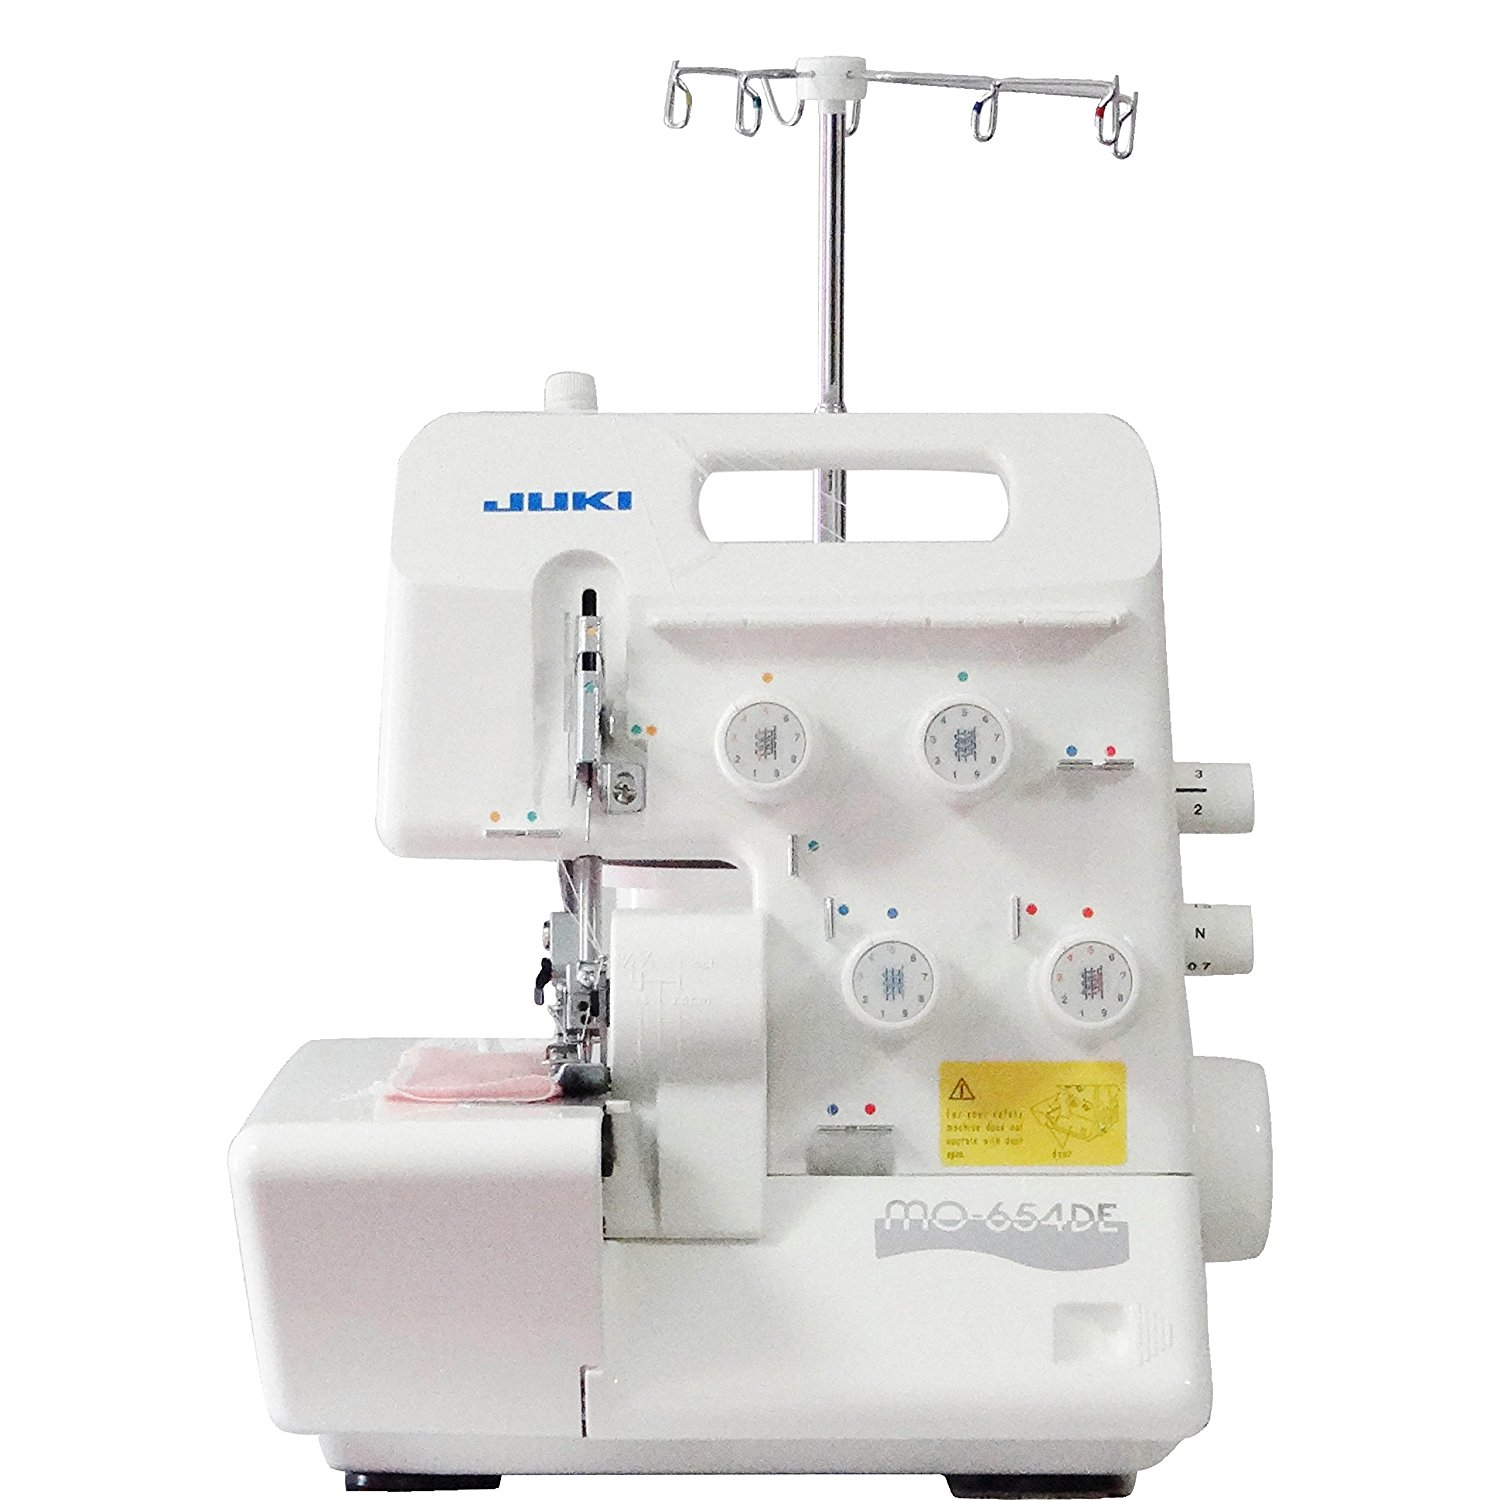 best serger machine: Always on the go? Try this option